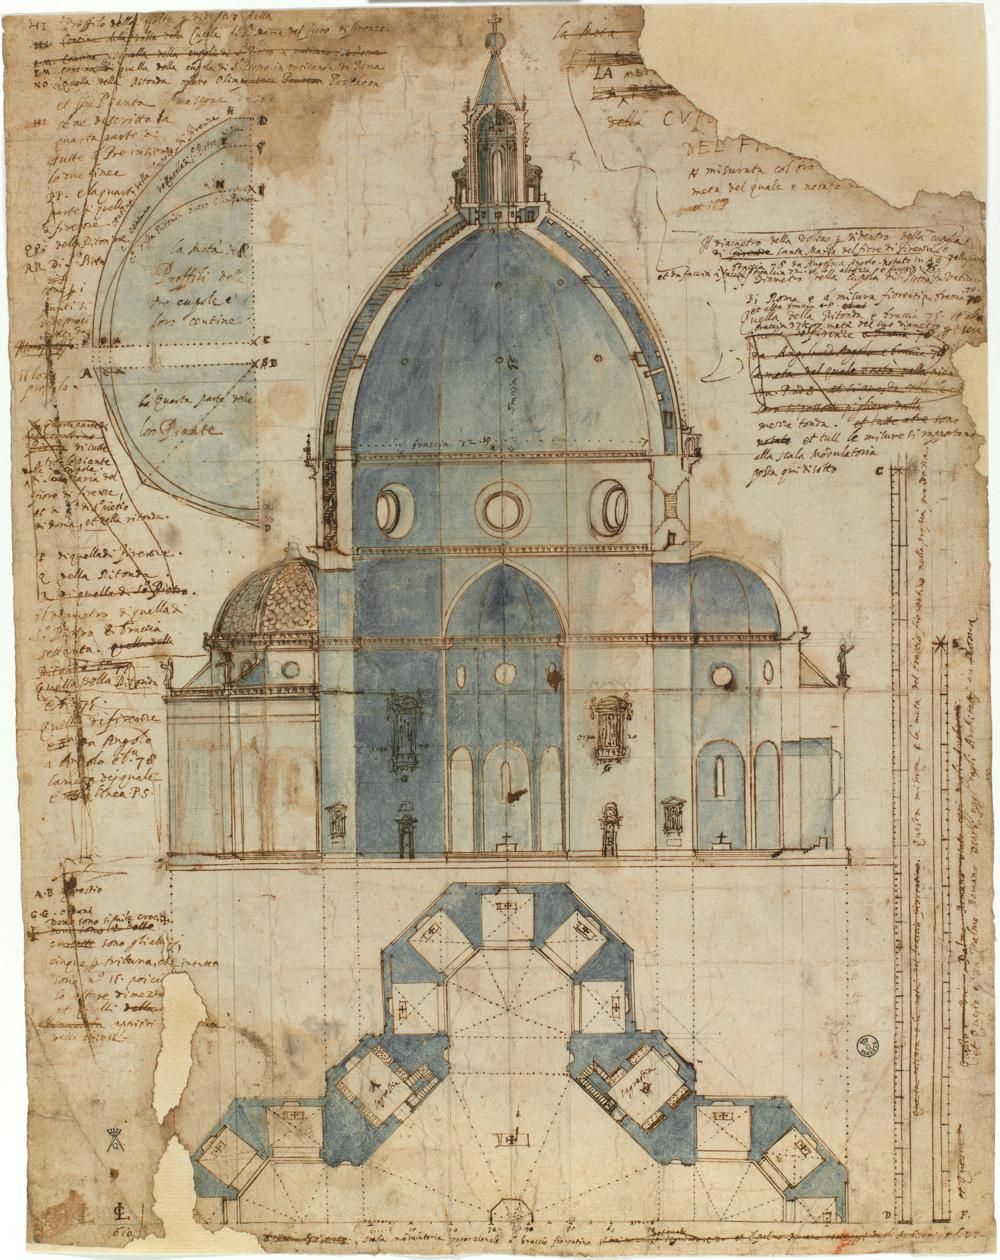 Filippo Brunelleschi's dome